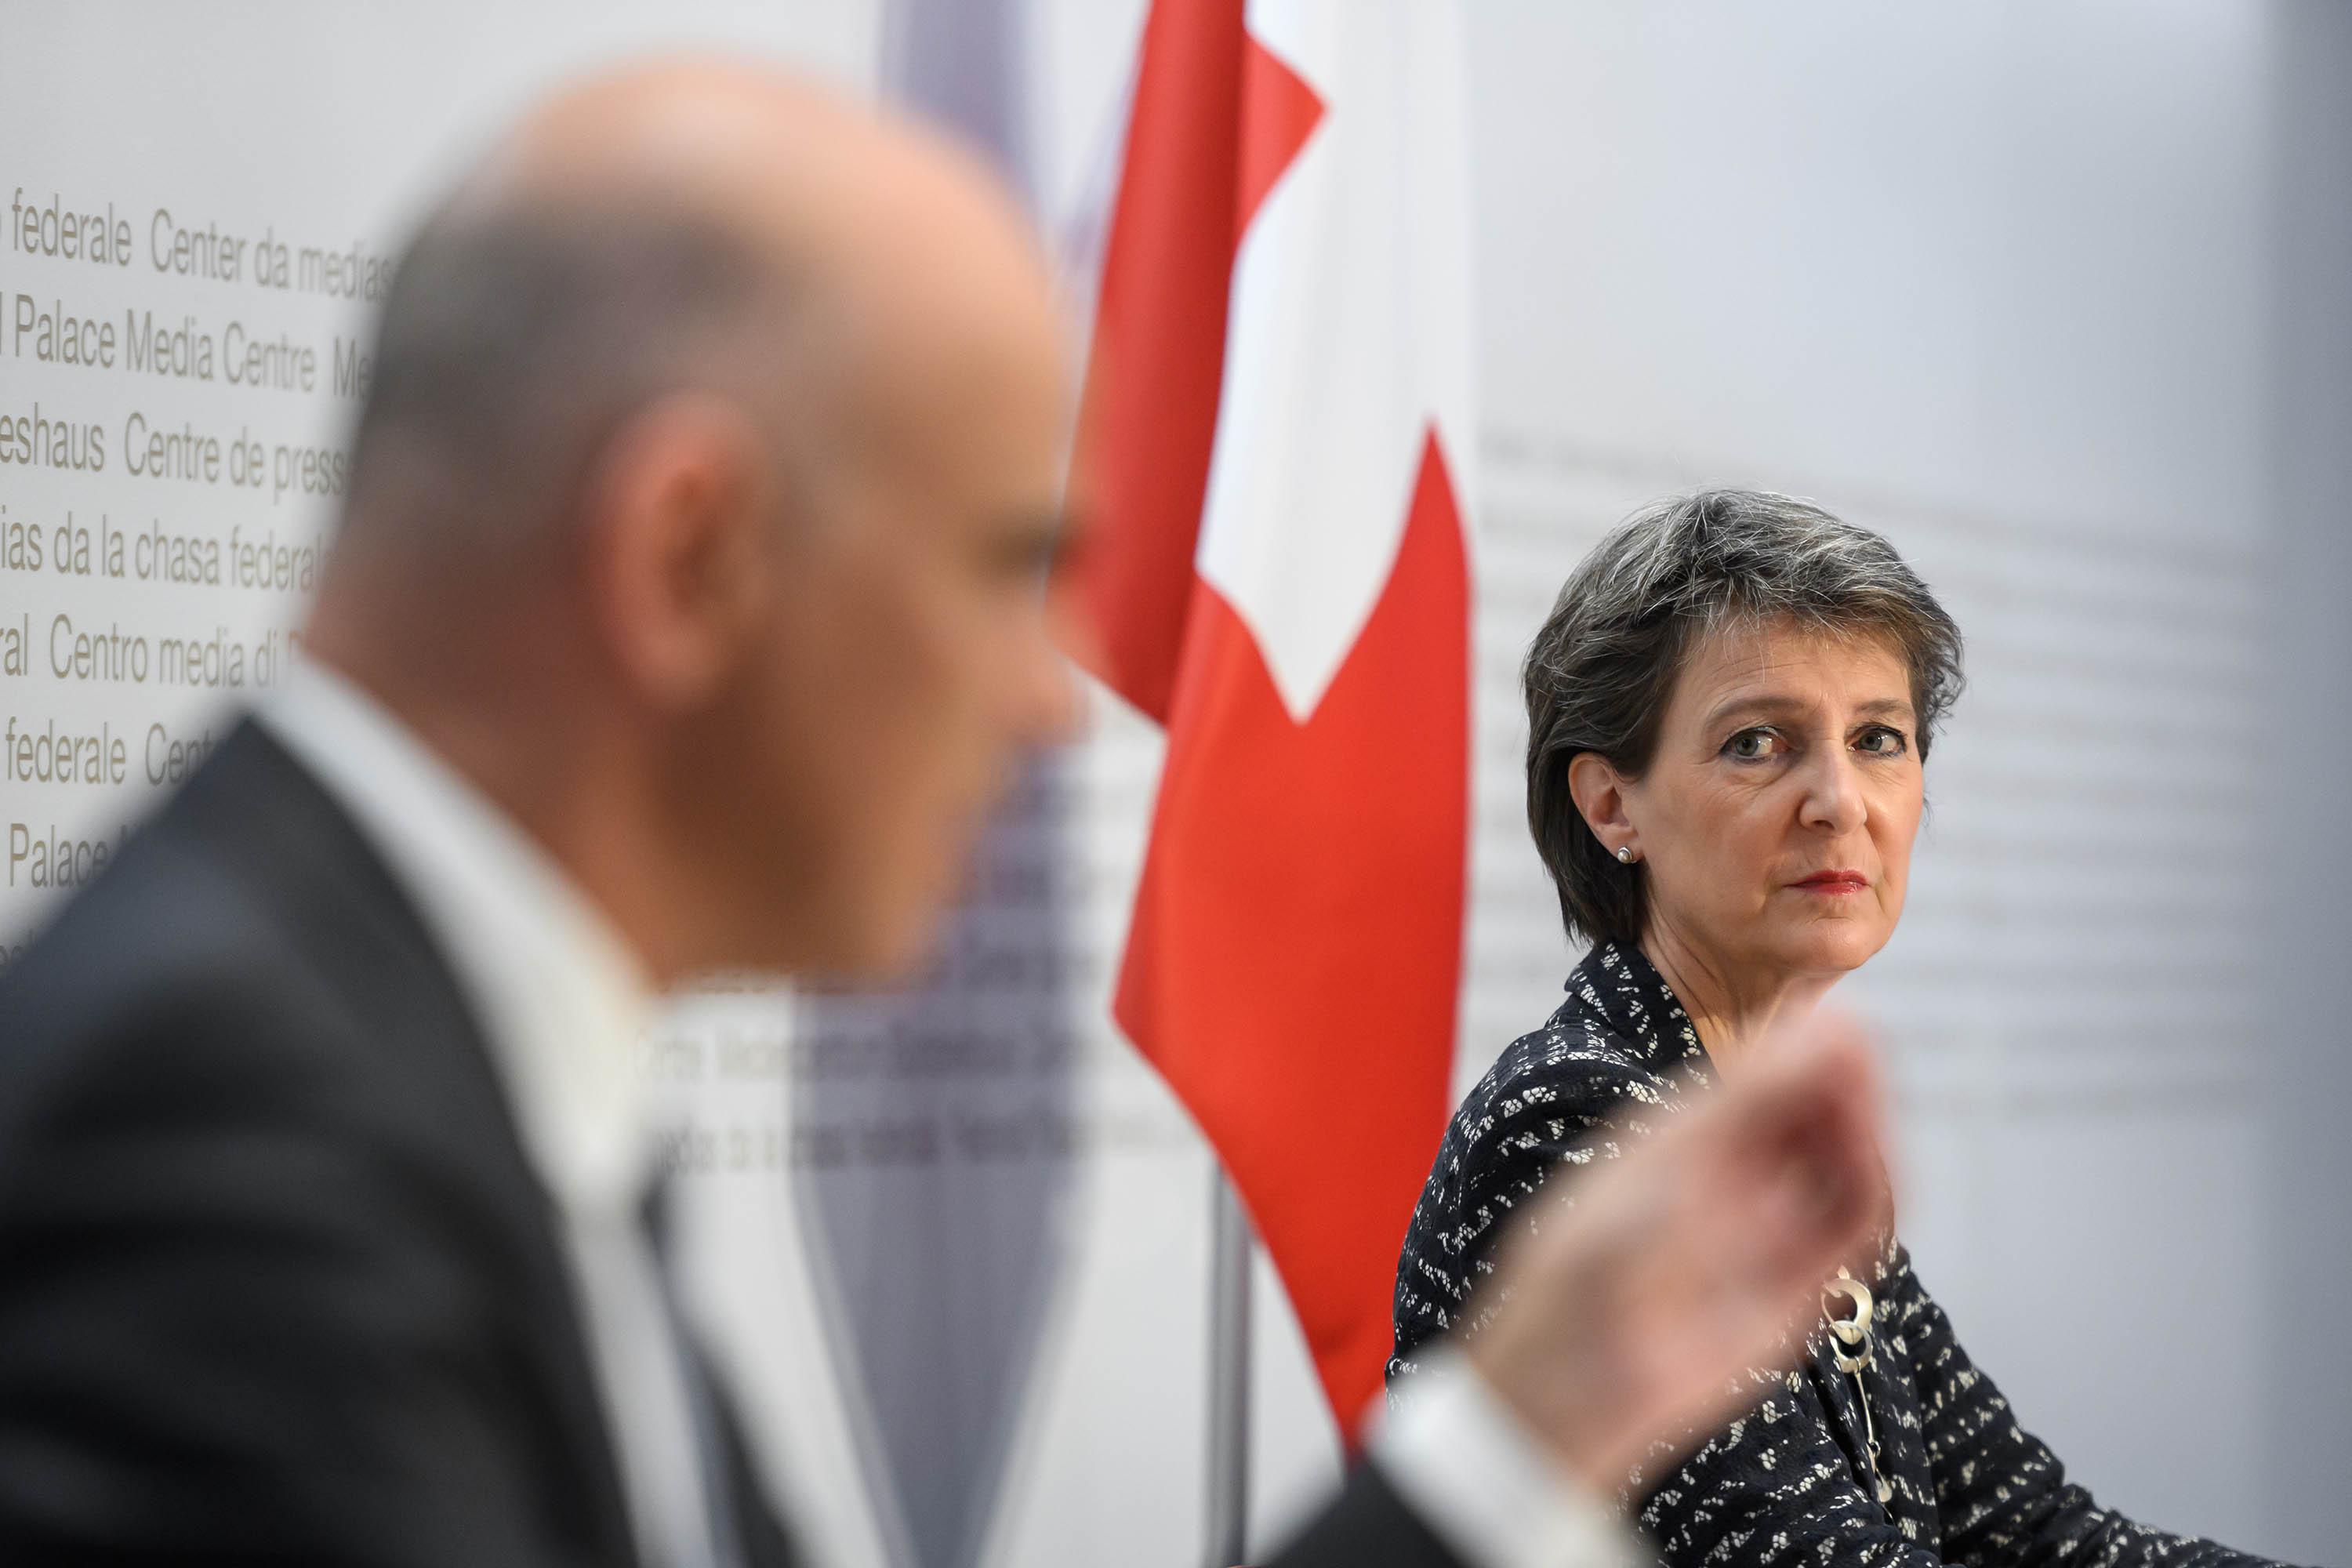 Swiss President Simonetta Sommaruga, right, looks on as Swiss Interior and Health Minister Alain Berset speaks during a press conference announcing new measures against the coronavirus in Bern on Sunday.